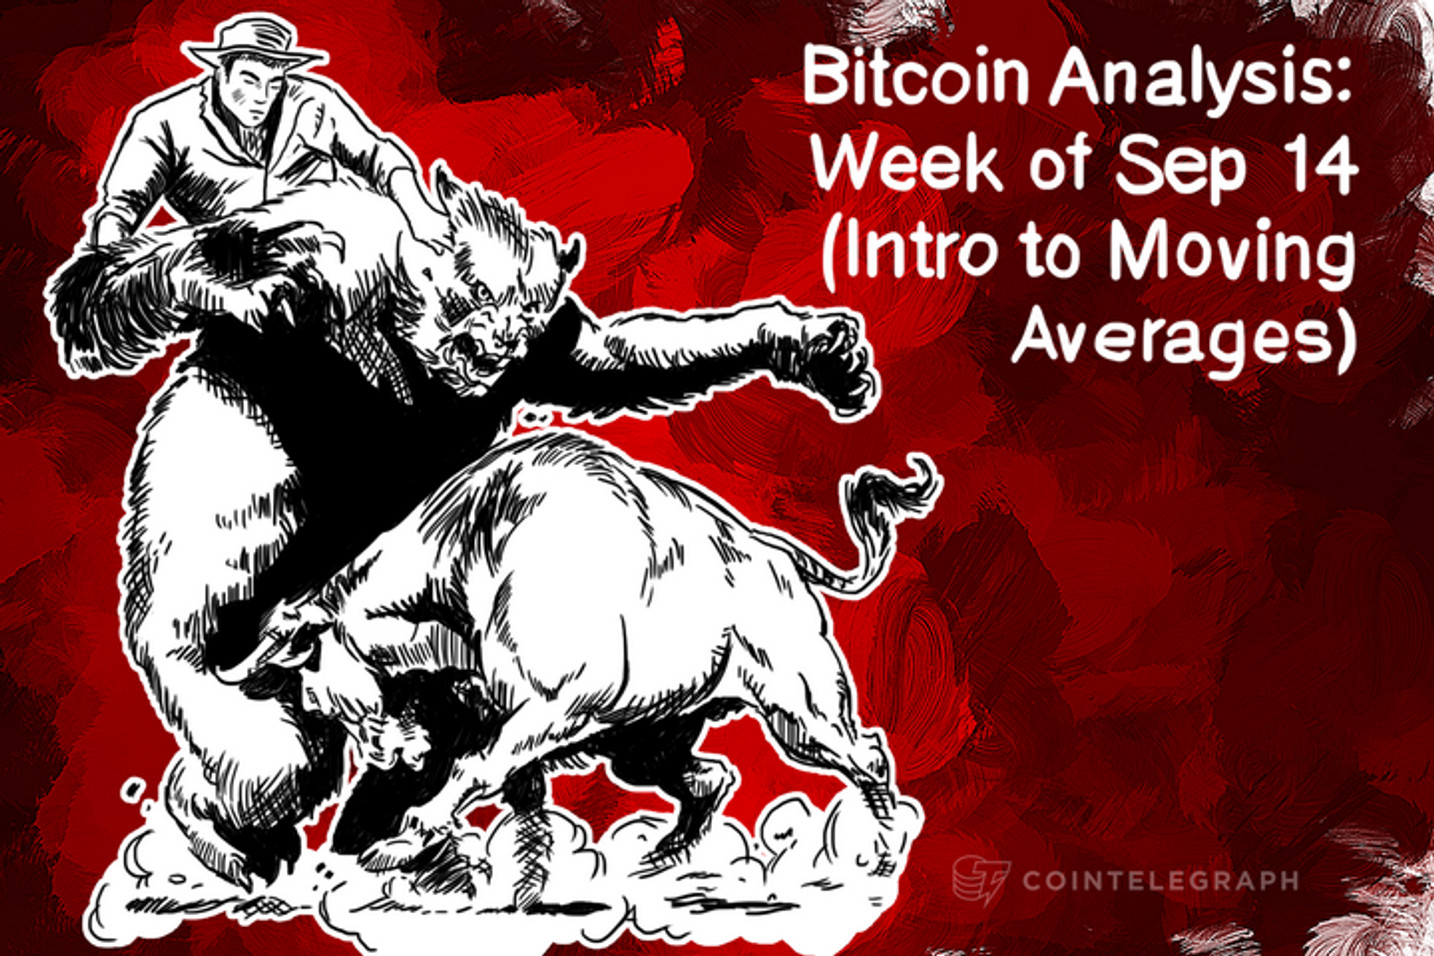 Bitcoin Analysis: Week of Sep 14 (Intro to Moving Averages)